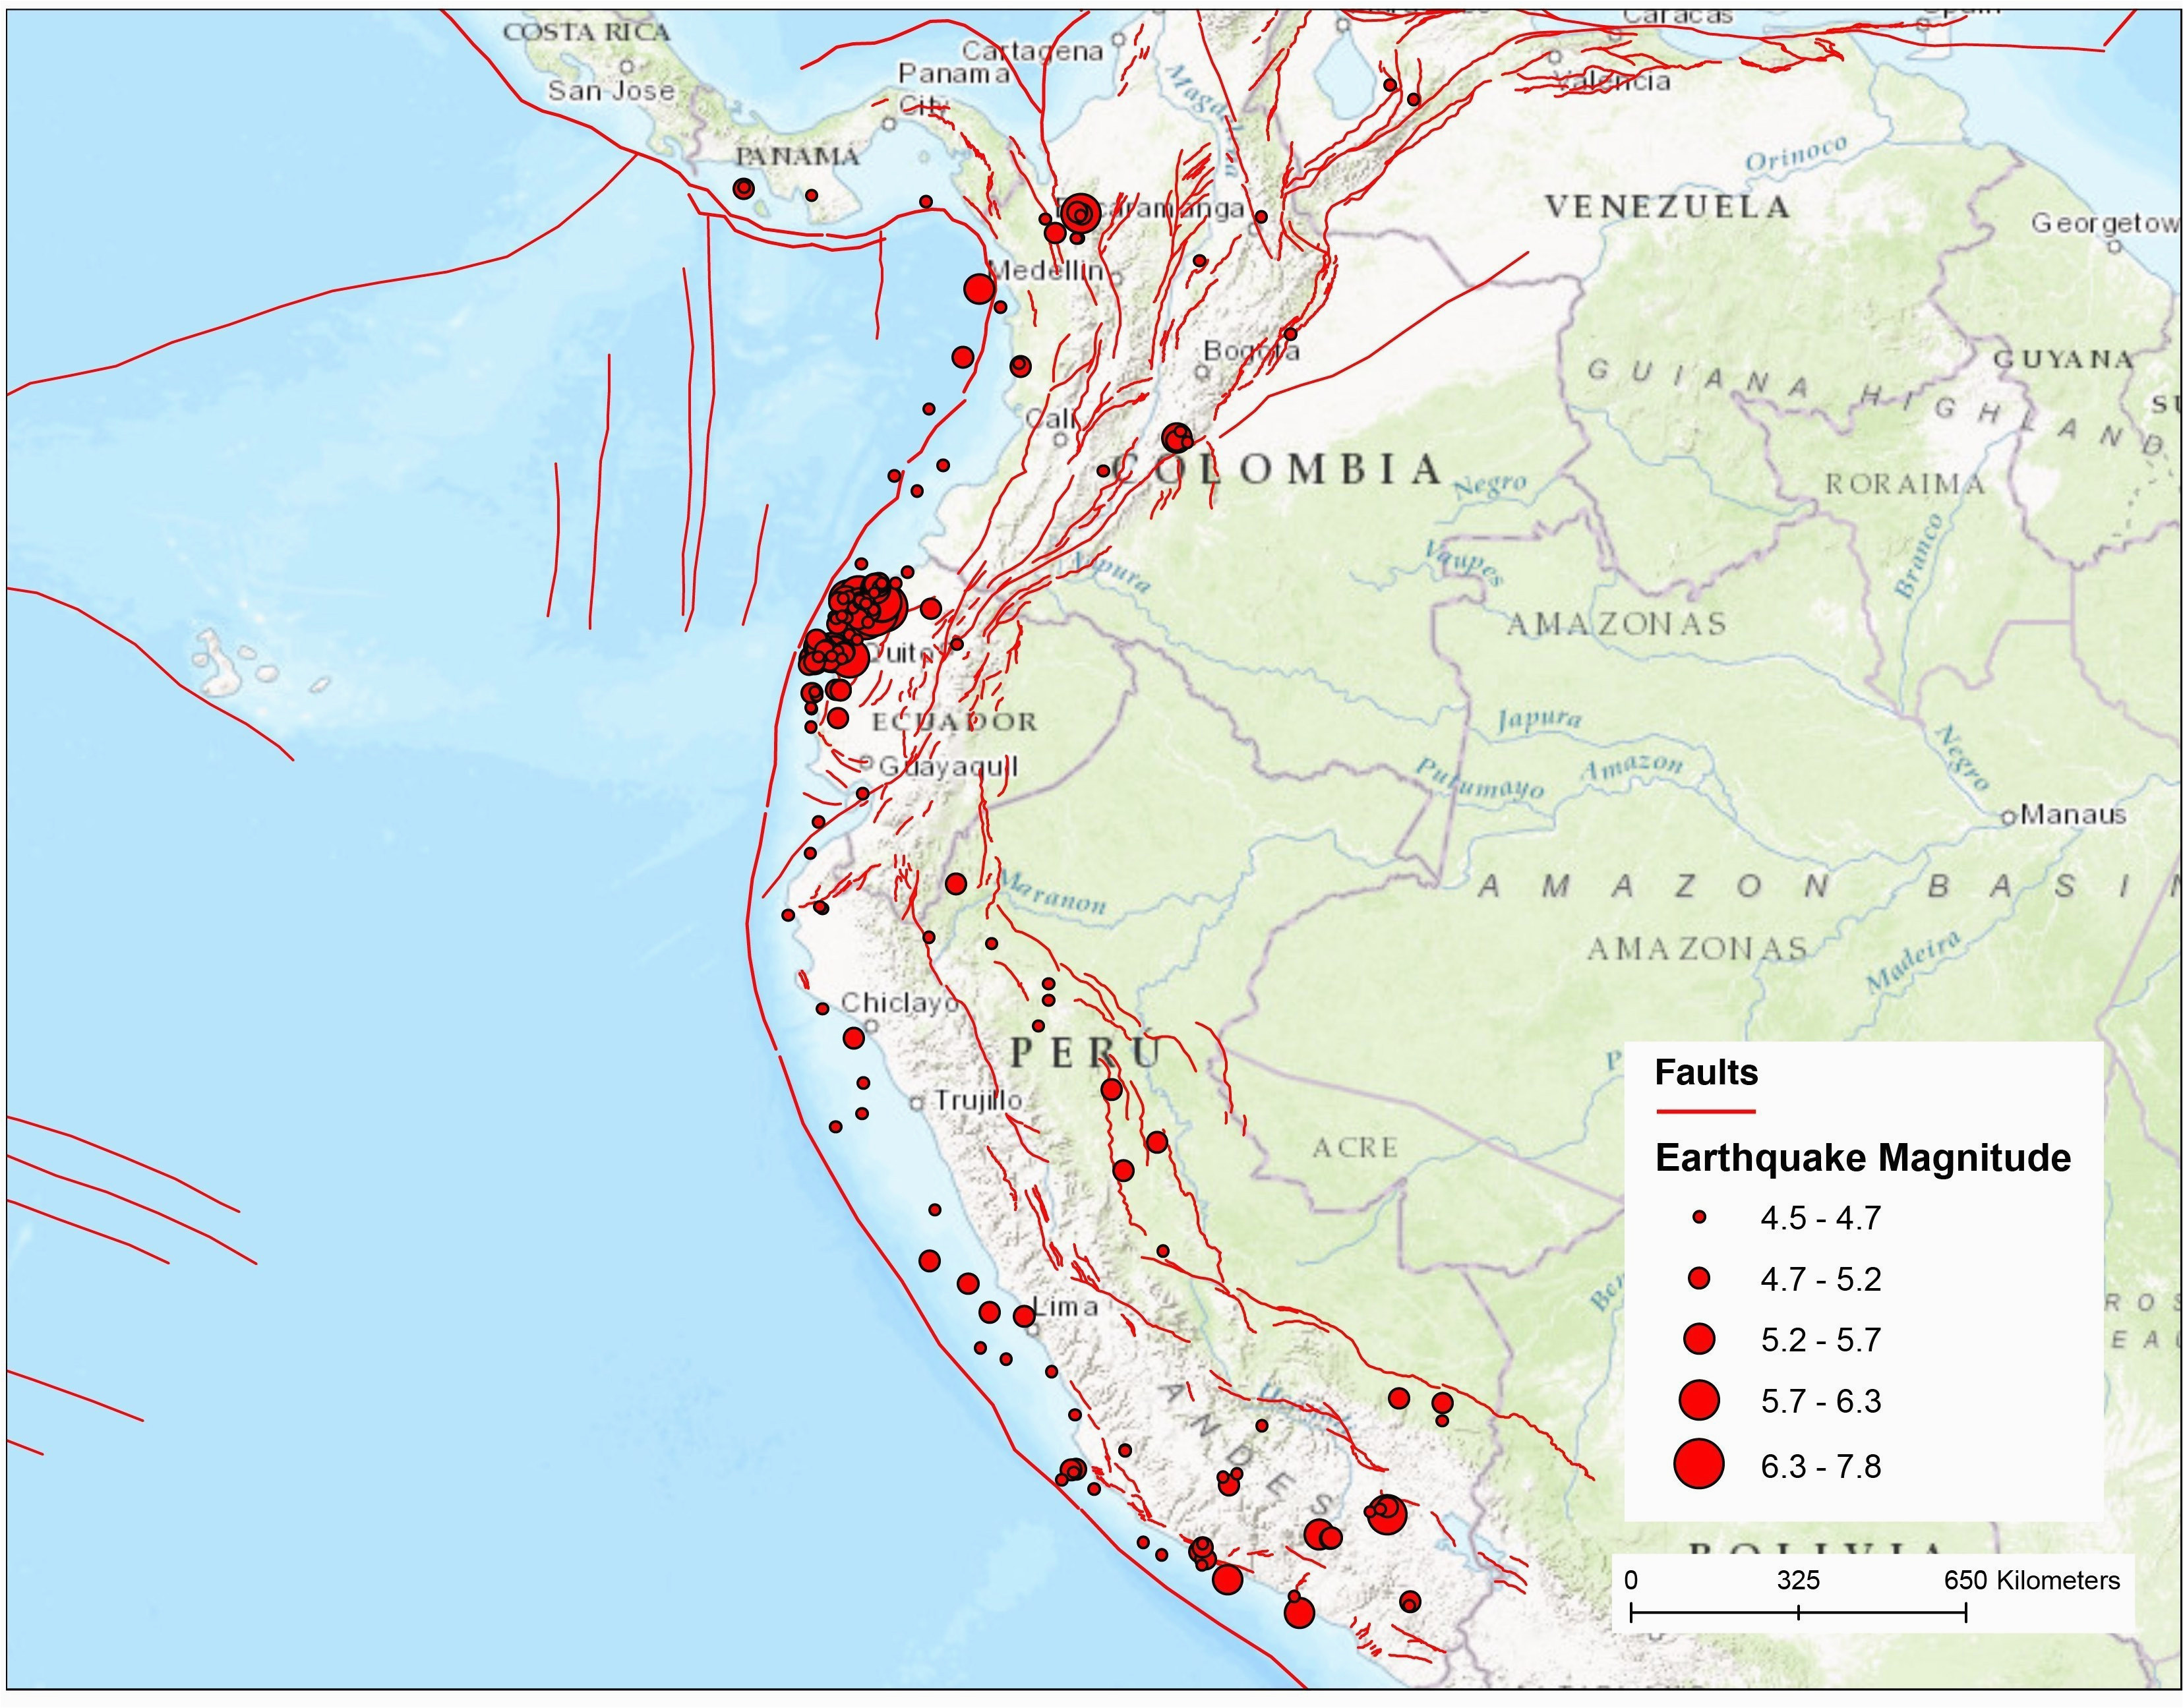 California Earthquake Faults Map Fault Lines Map Image Map ... on new mexico faultlines map, earthquake frequency map, fault line map, united states fault zone map, earth faults map, united states earthquake map, us fault lines, wisconsin geology map, usgs seismic zone map,